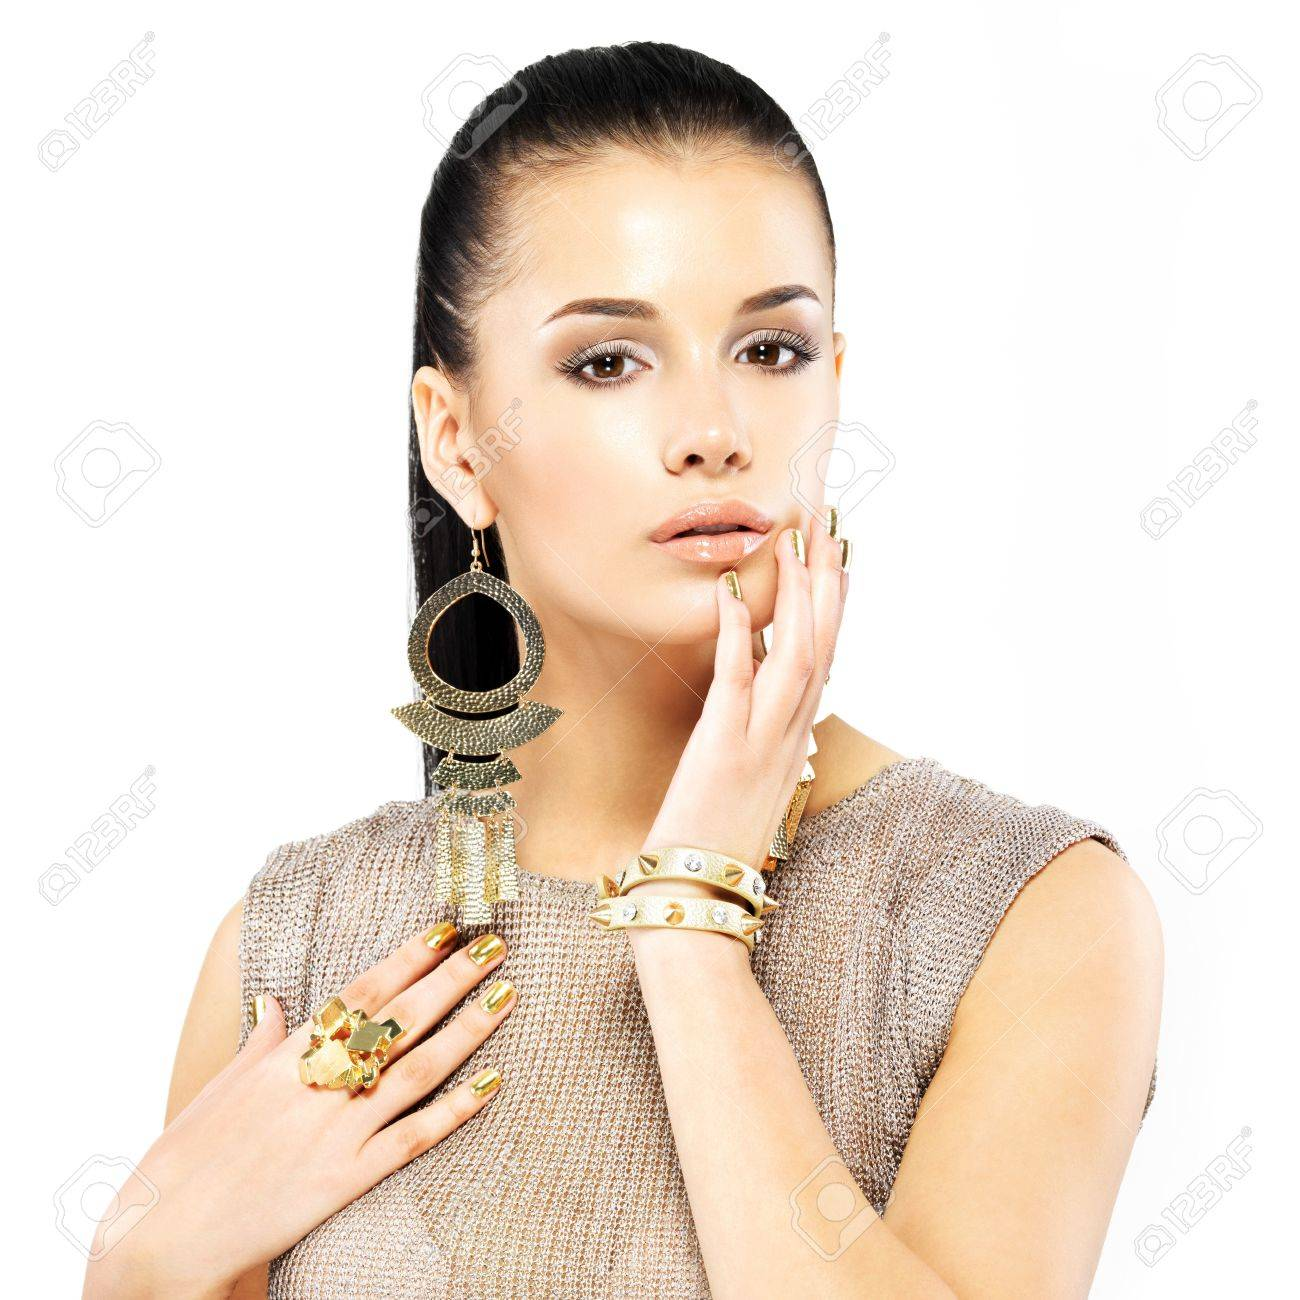 Pretty woman with golden nails and beautiful gold jewelry isolated on white background Stock Photo - 21886389